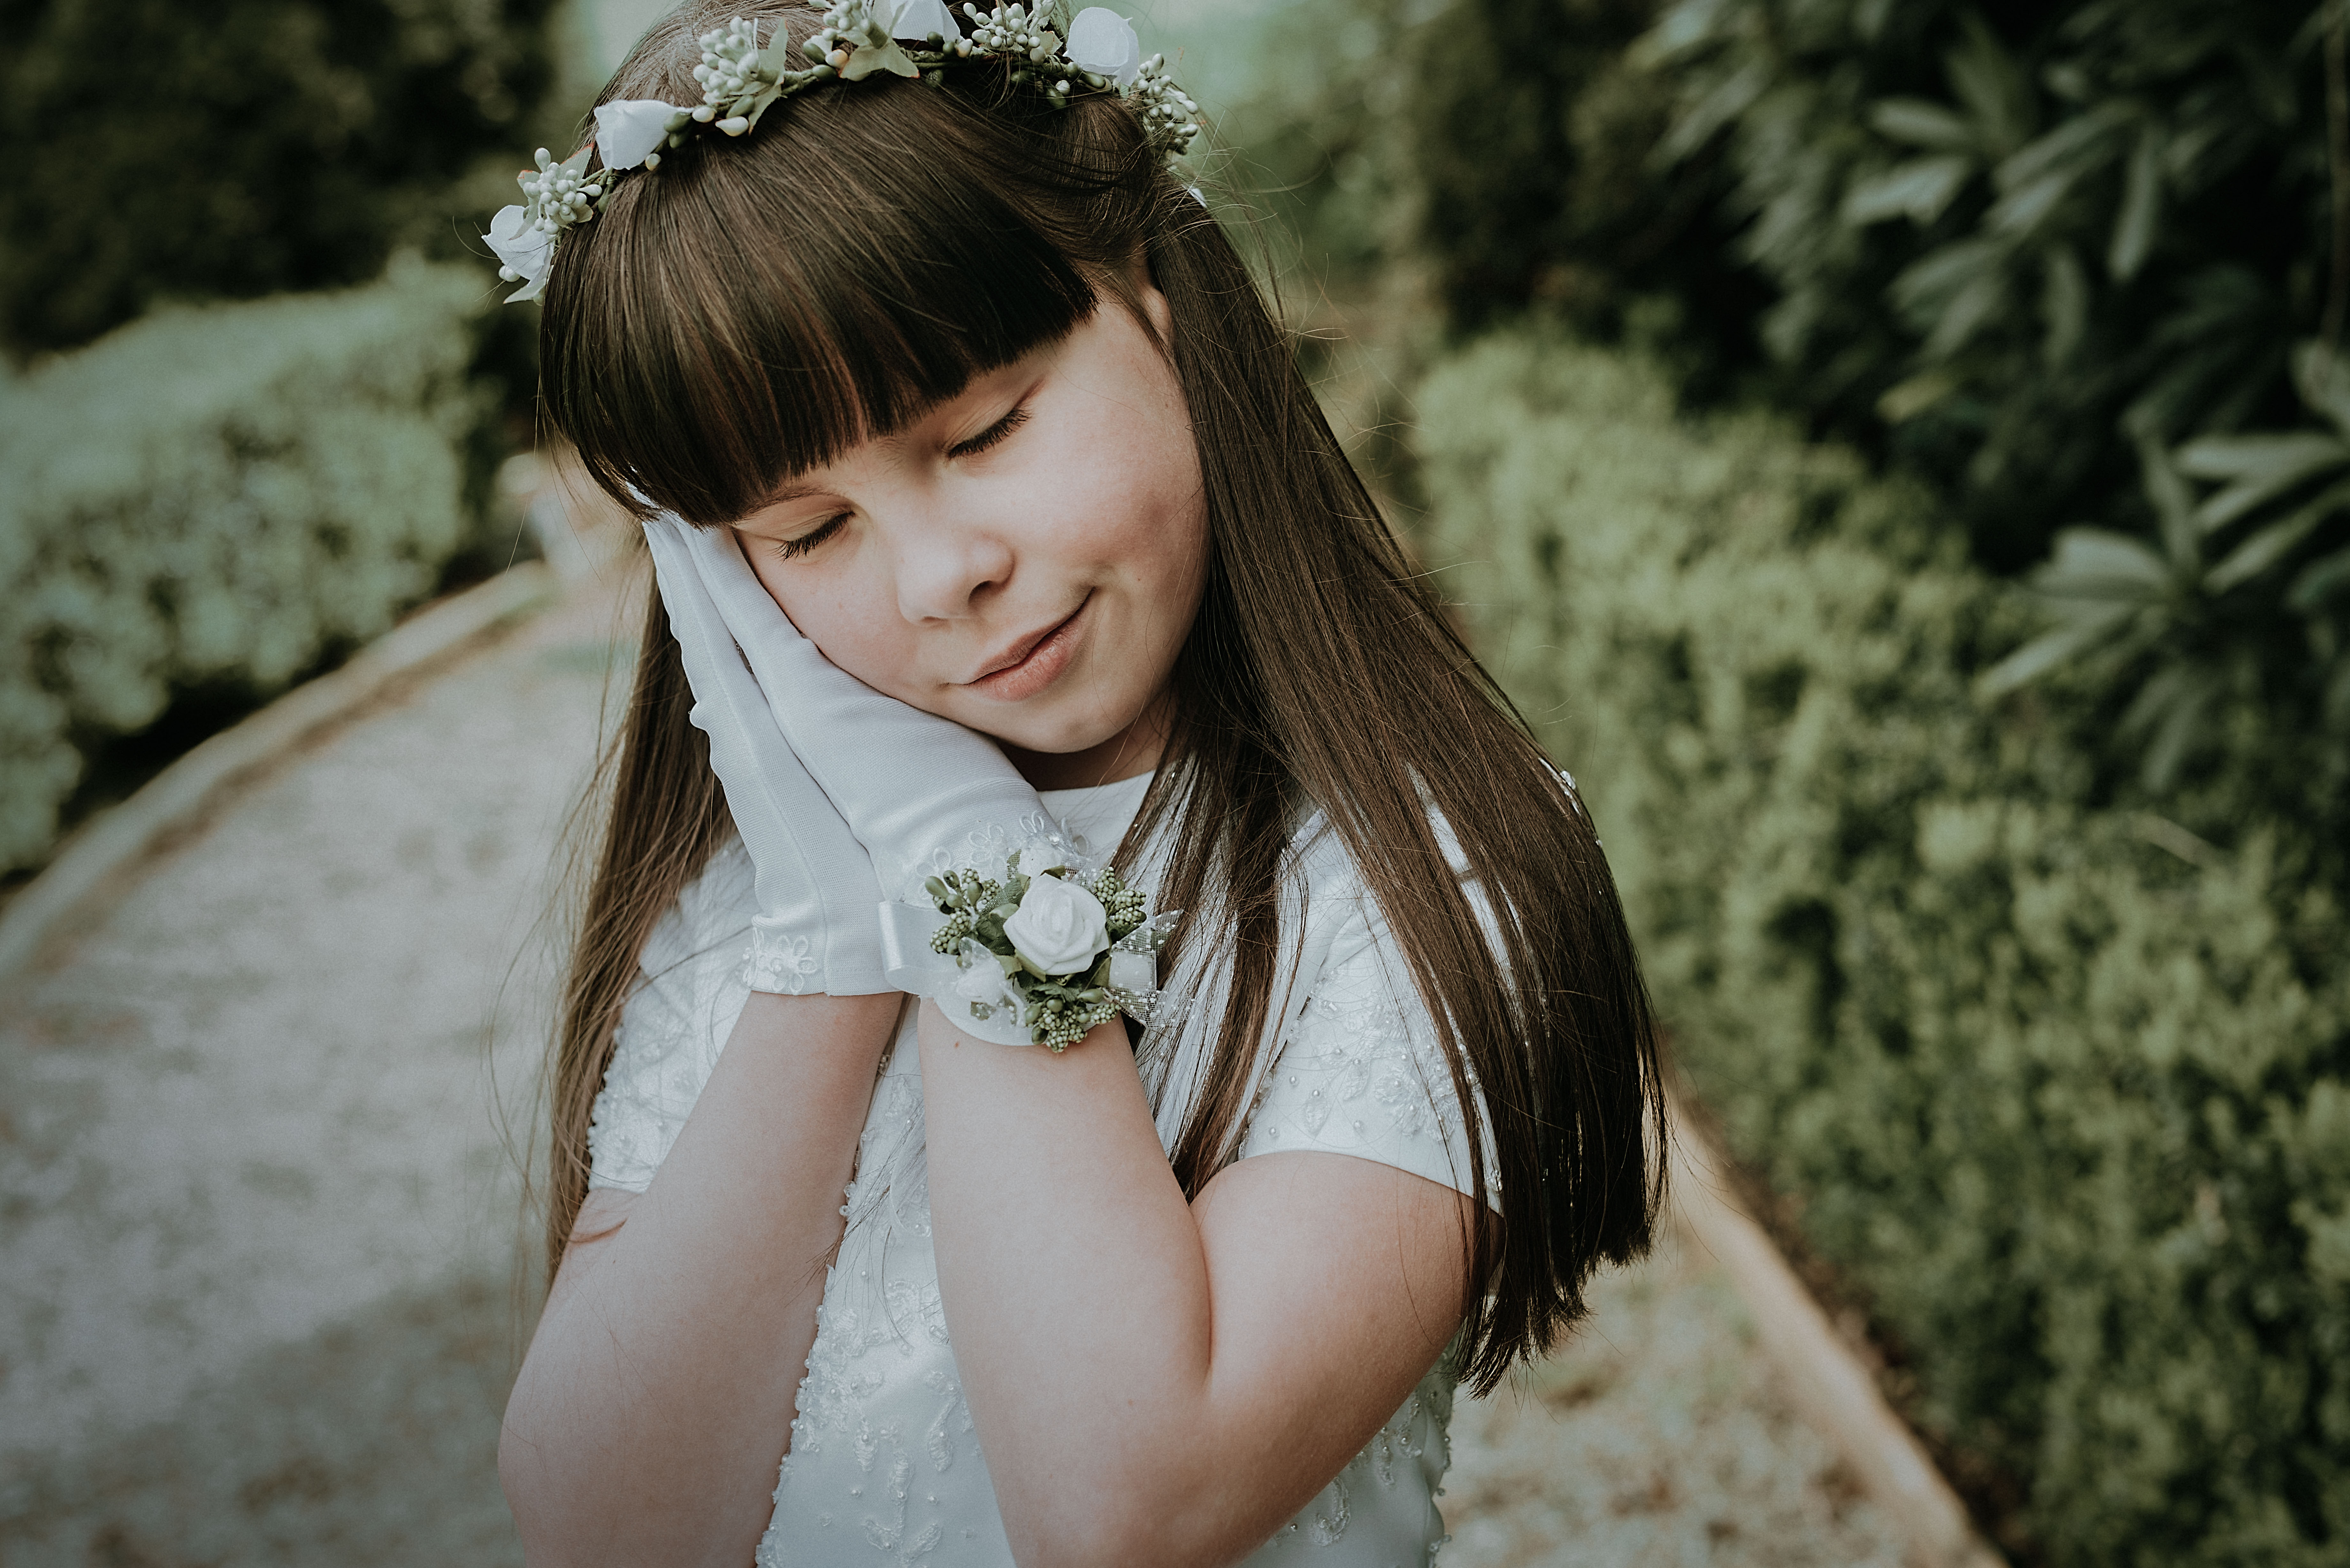 Zosia and her Communion Day 28.04.18